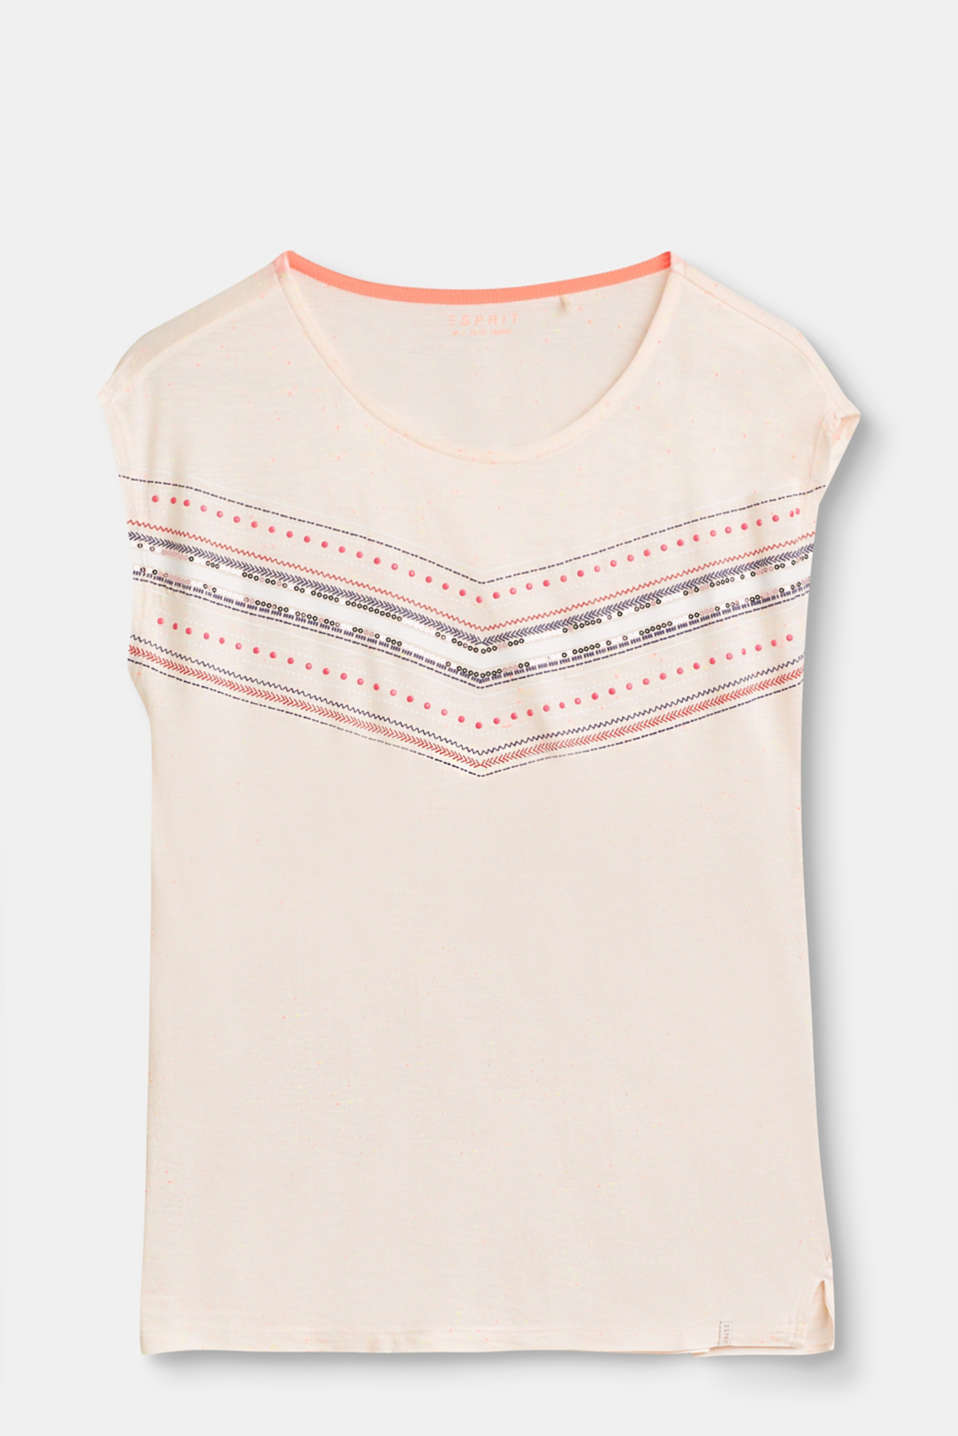 Esprit - Lightweight T-shirt with bright slubs and sequins